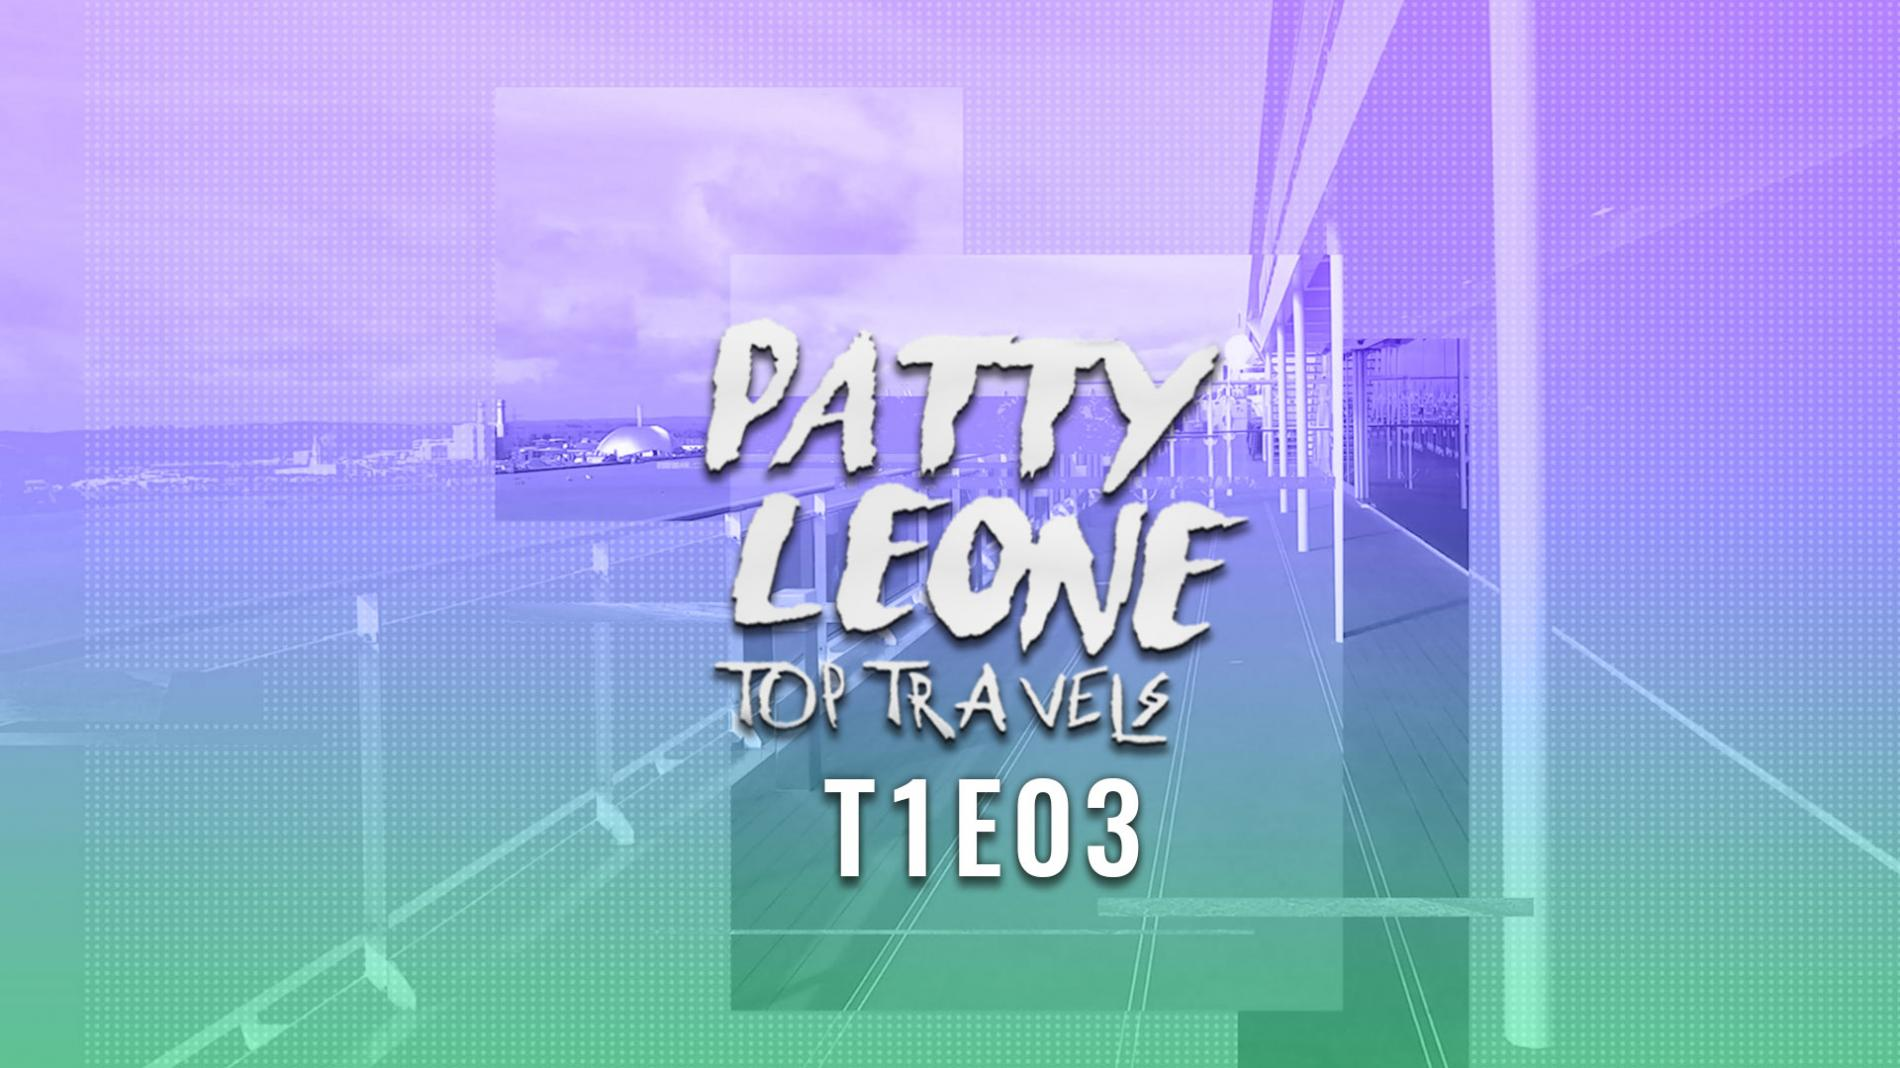 Patty Leone Top Travels - Temporada T01 - Episódio E03